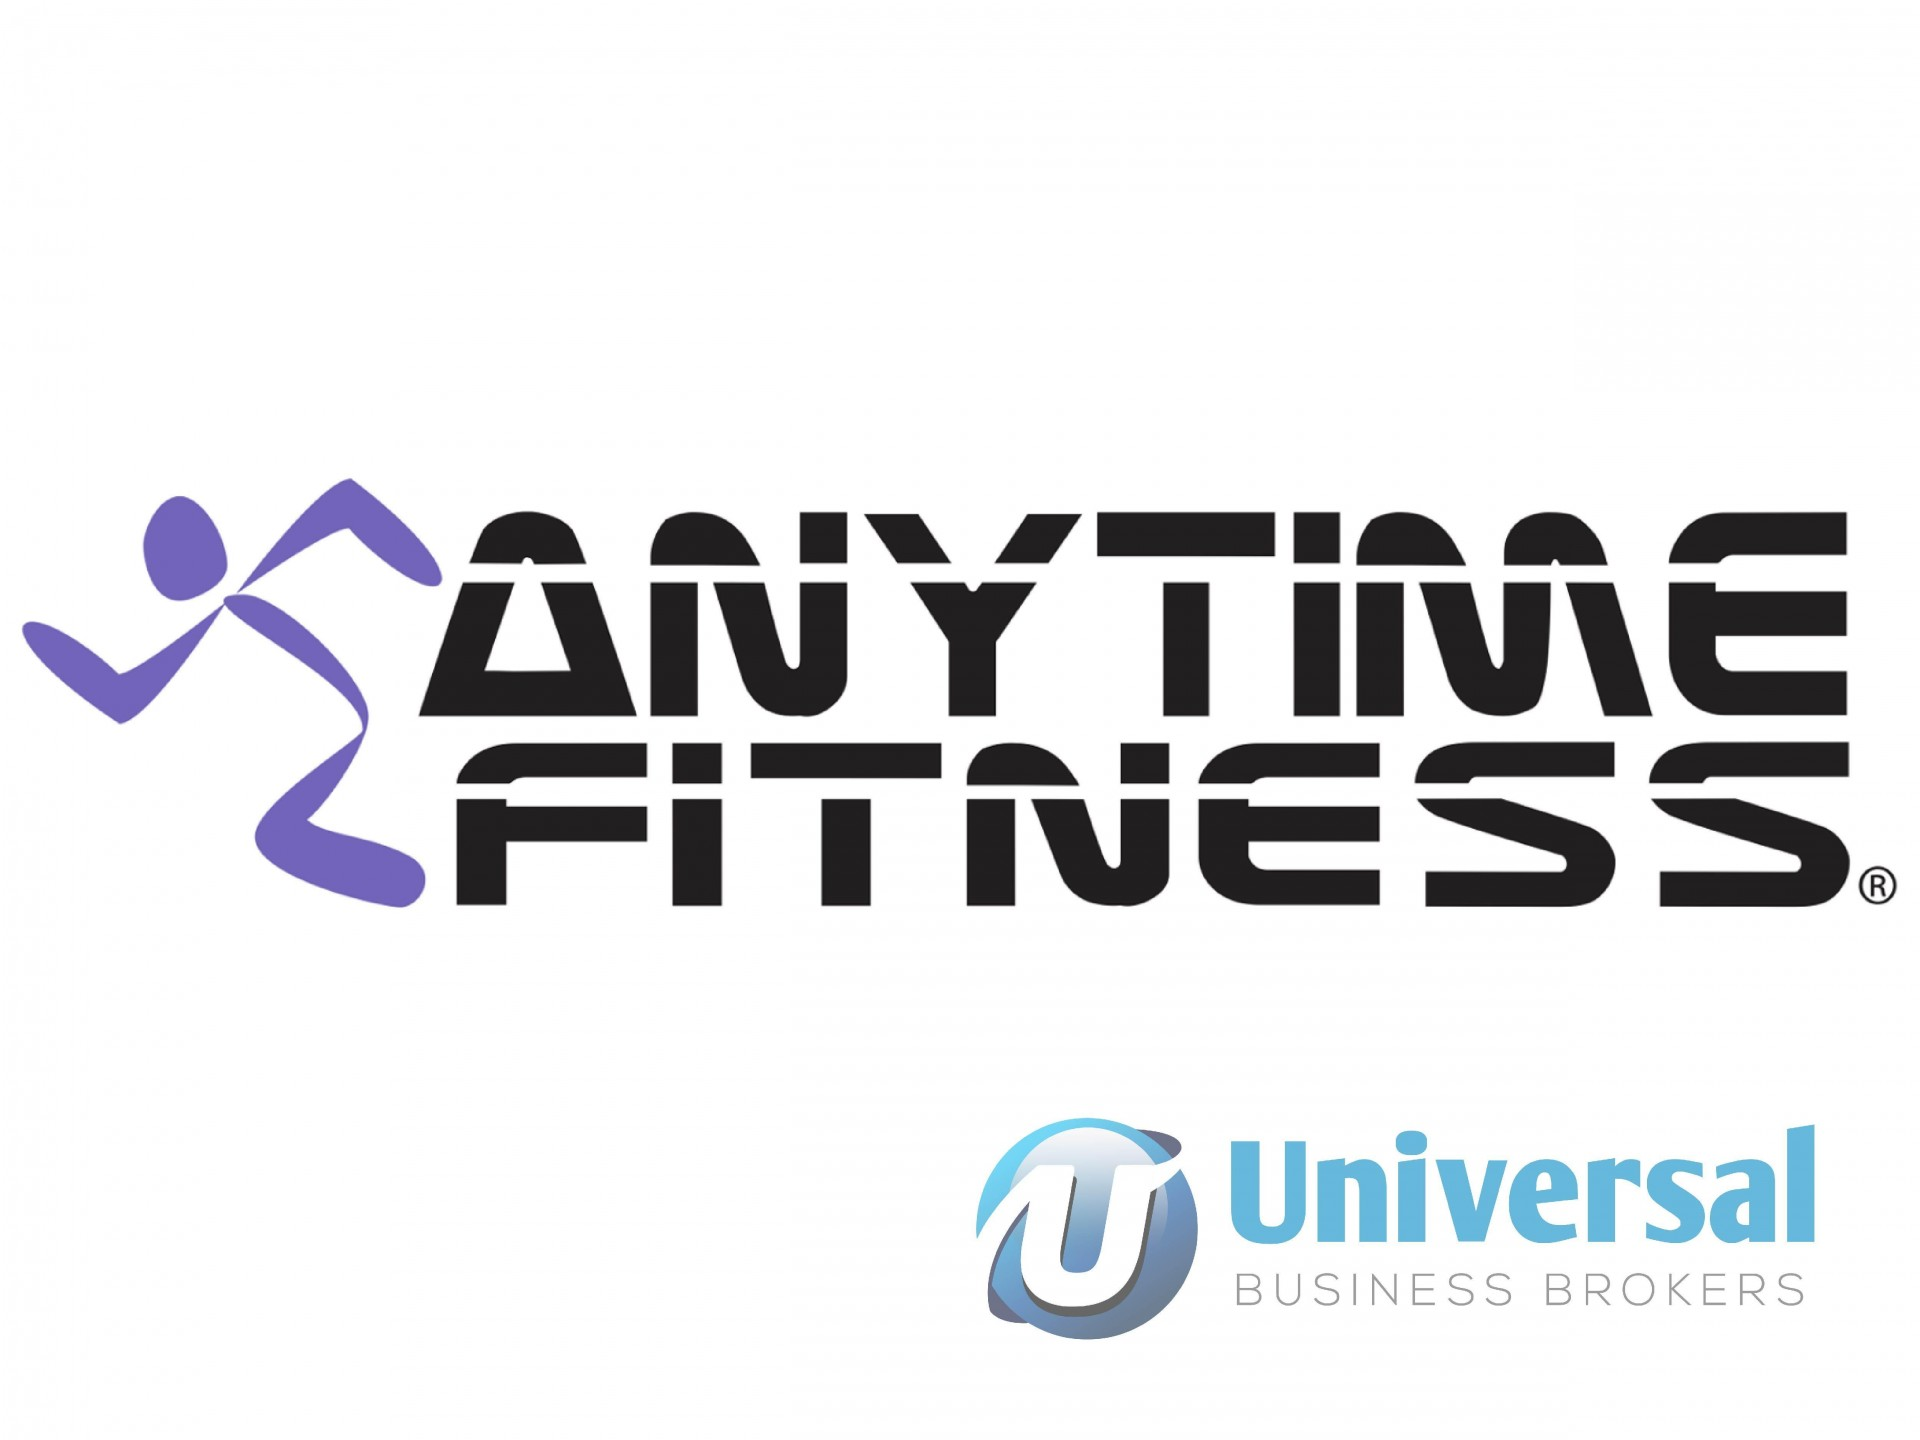 Anytime Fitness Gym Franchise For Sale - NSW North Coast